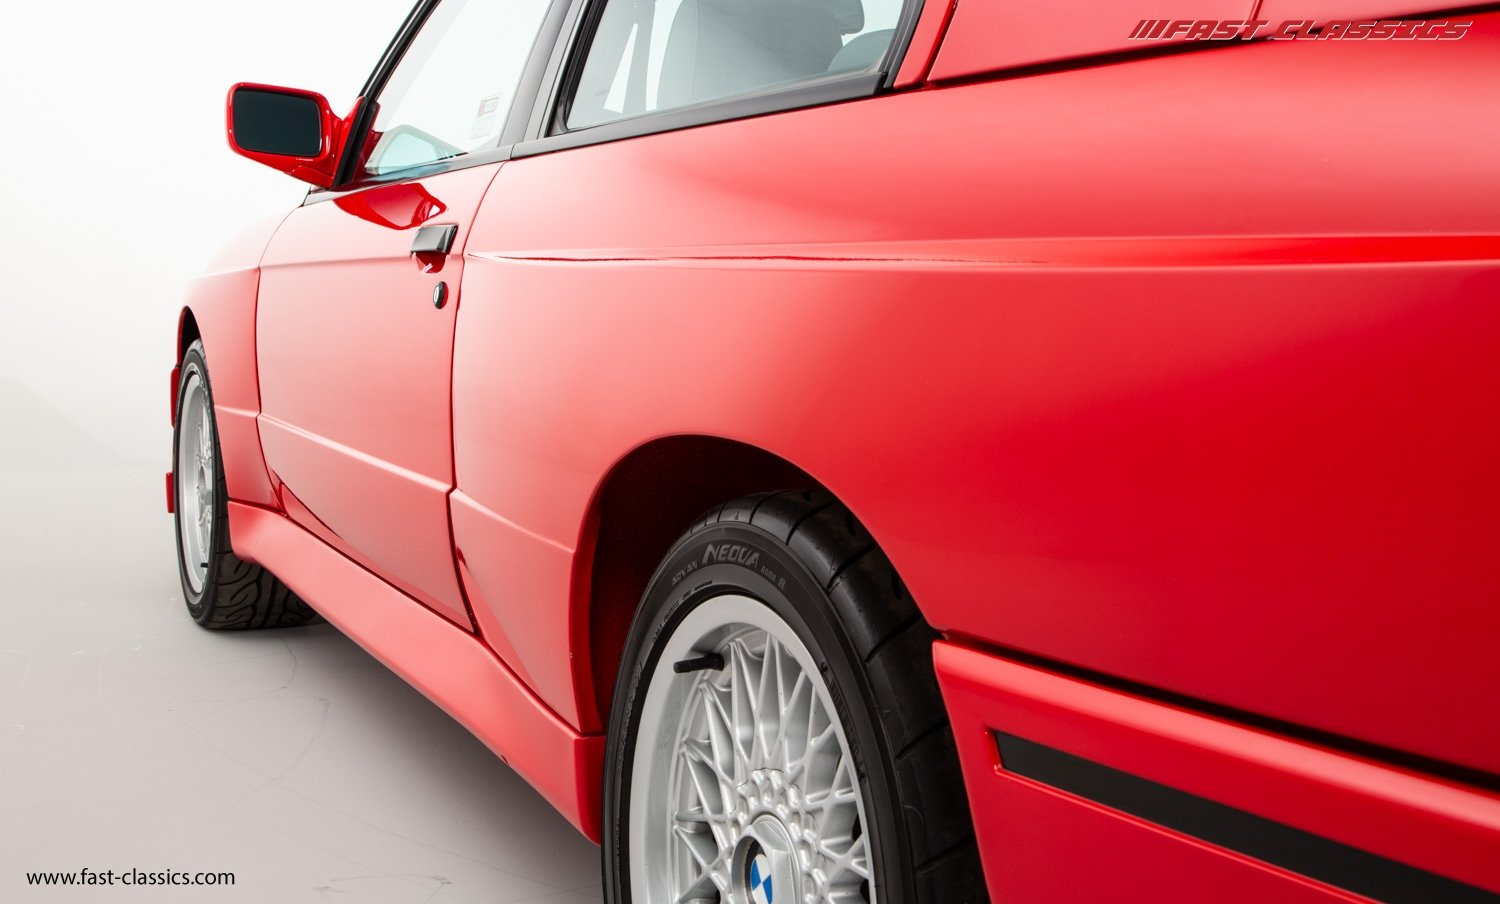 1988 BMW E30 M3 EVO 2 // GERMAN SUPPLIED // NUT & BOLT RESTO For Sale (picture 6 of 22)